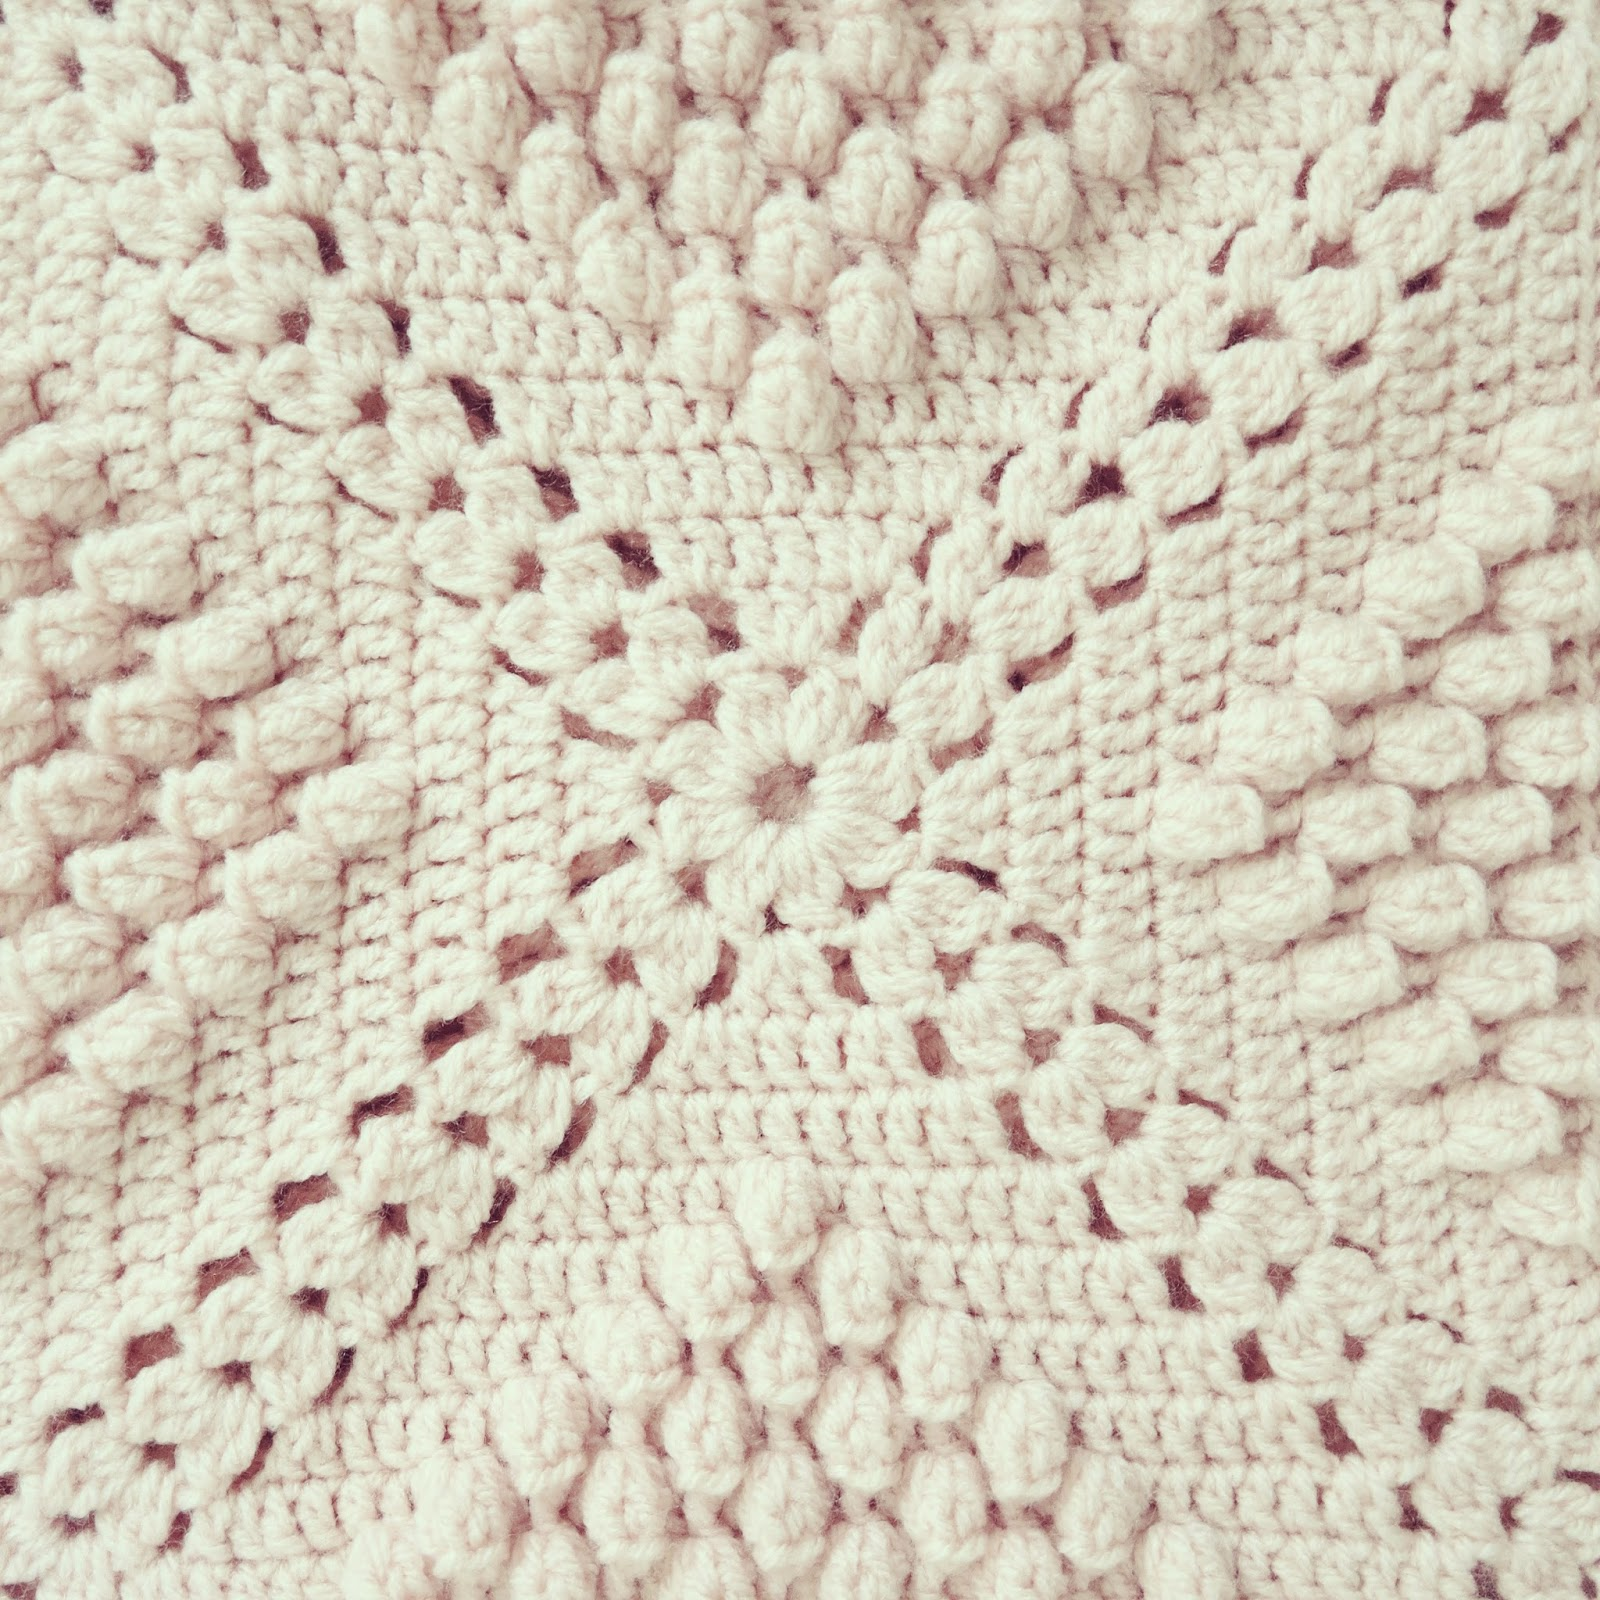 Patterns For Crochet : popcorn is made of 5 completed double crochets in 1 one stitch ...